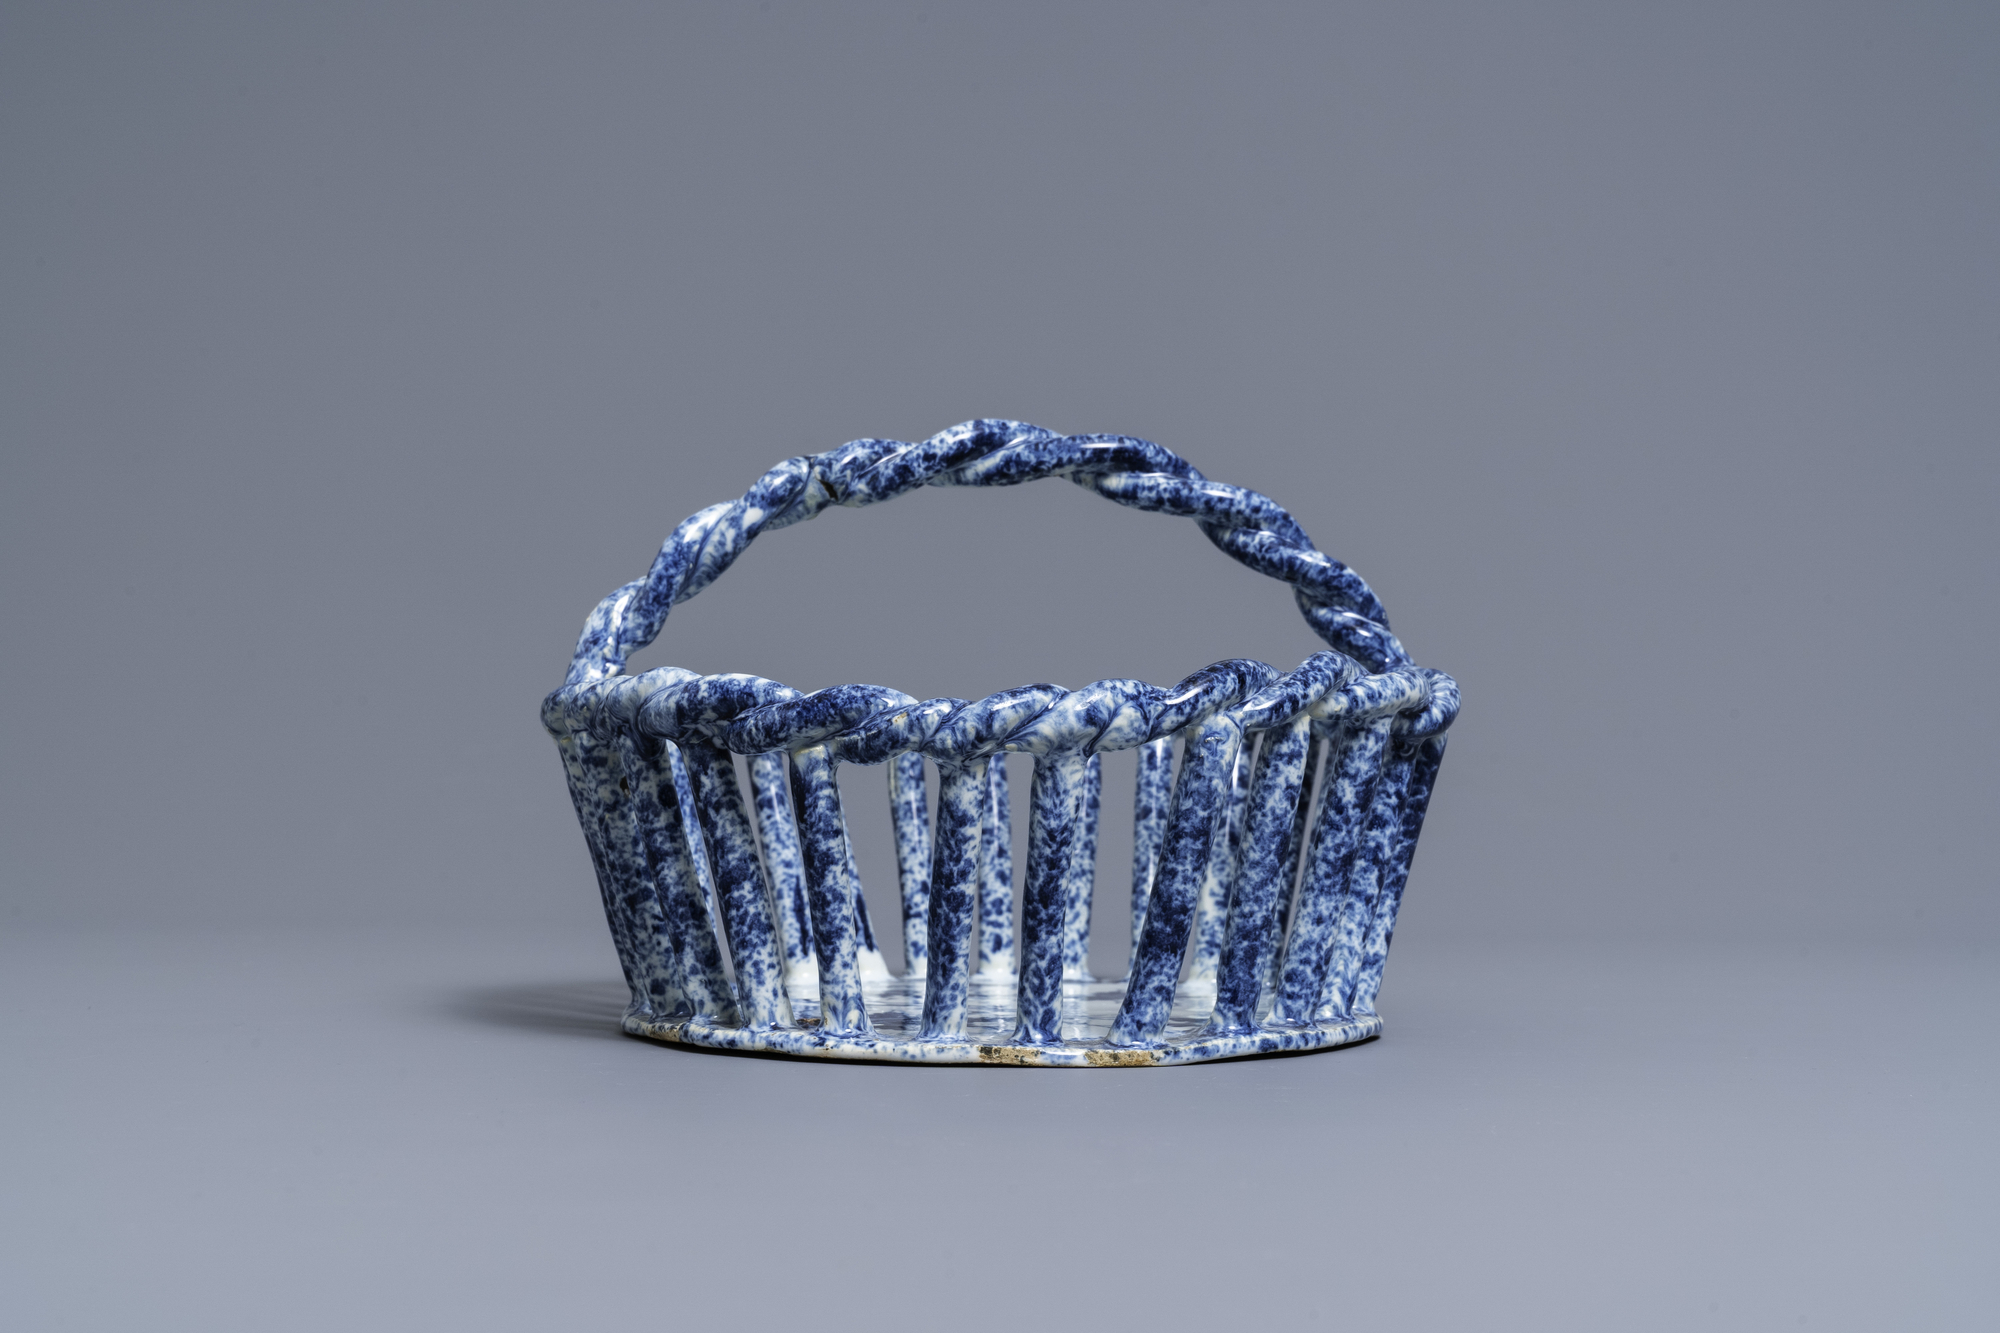 A rare Dutch Delft blue and white reticulated basket, 18th C. - Image 5 of 7